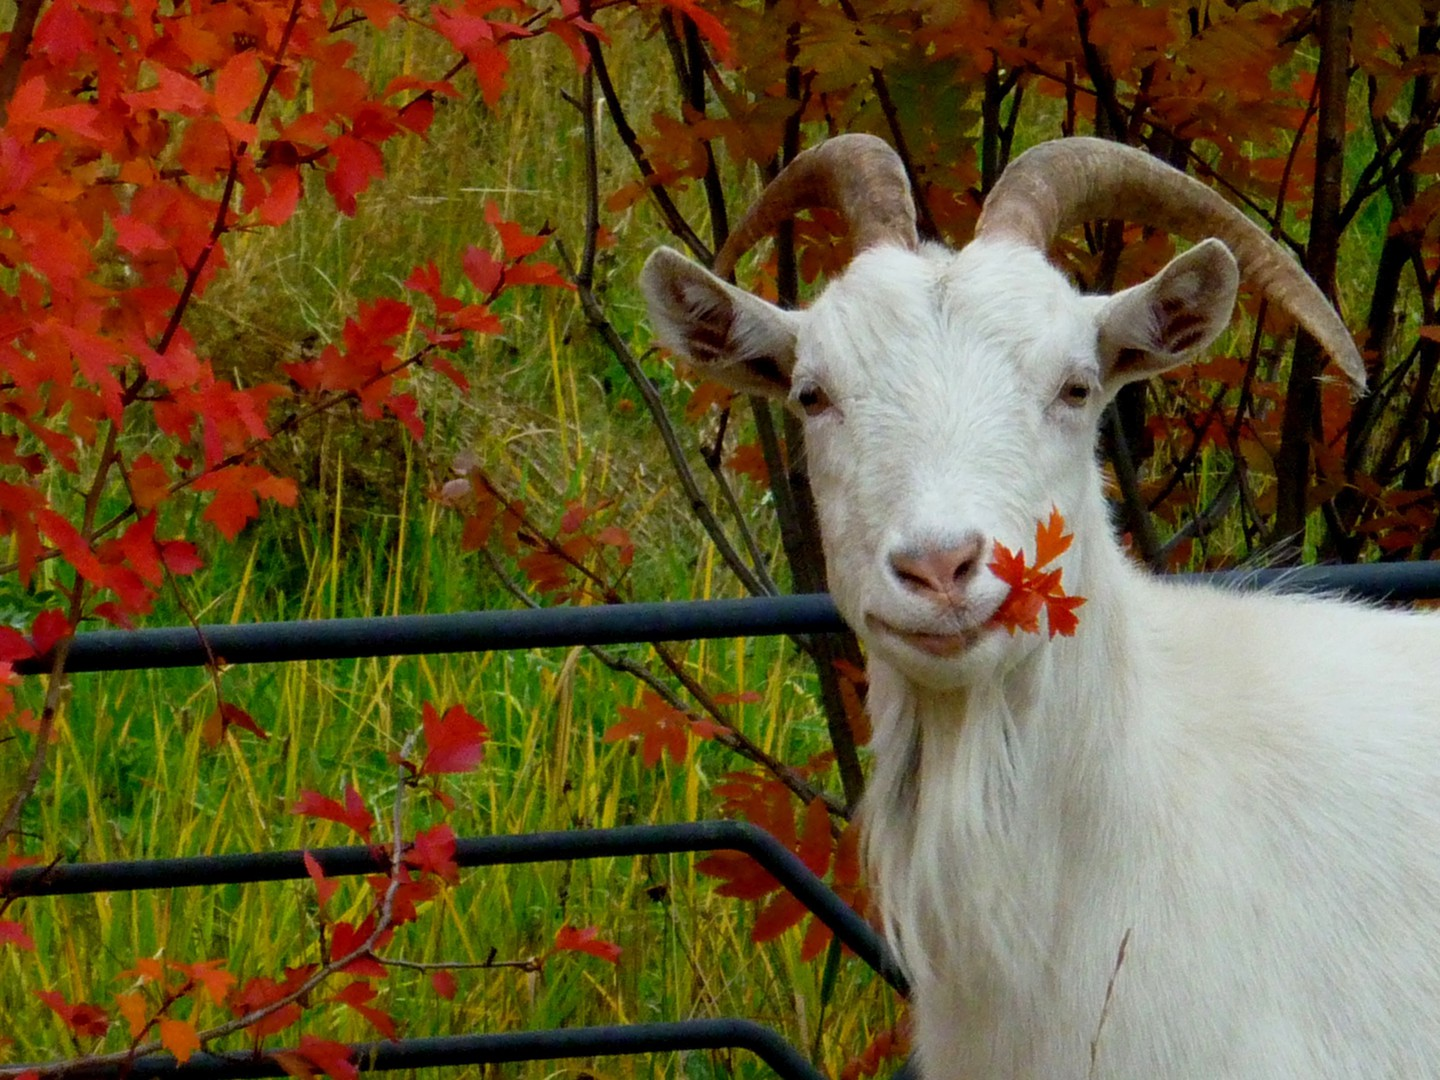 Dark Fall Wallpaper Animals Autumn Goats Leaves Wallpaper Allwallpaper In